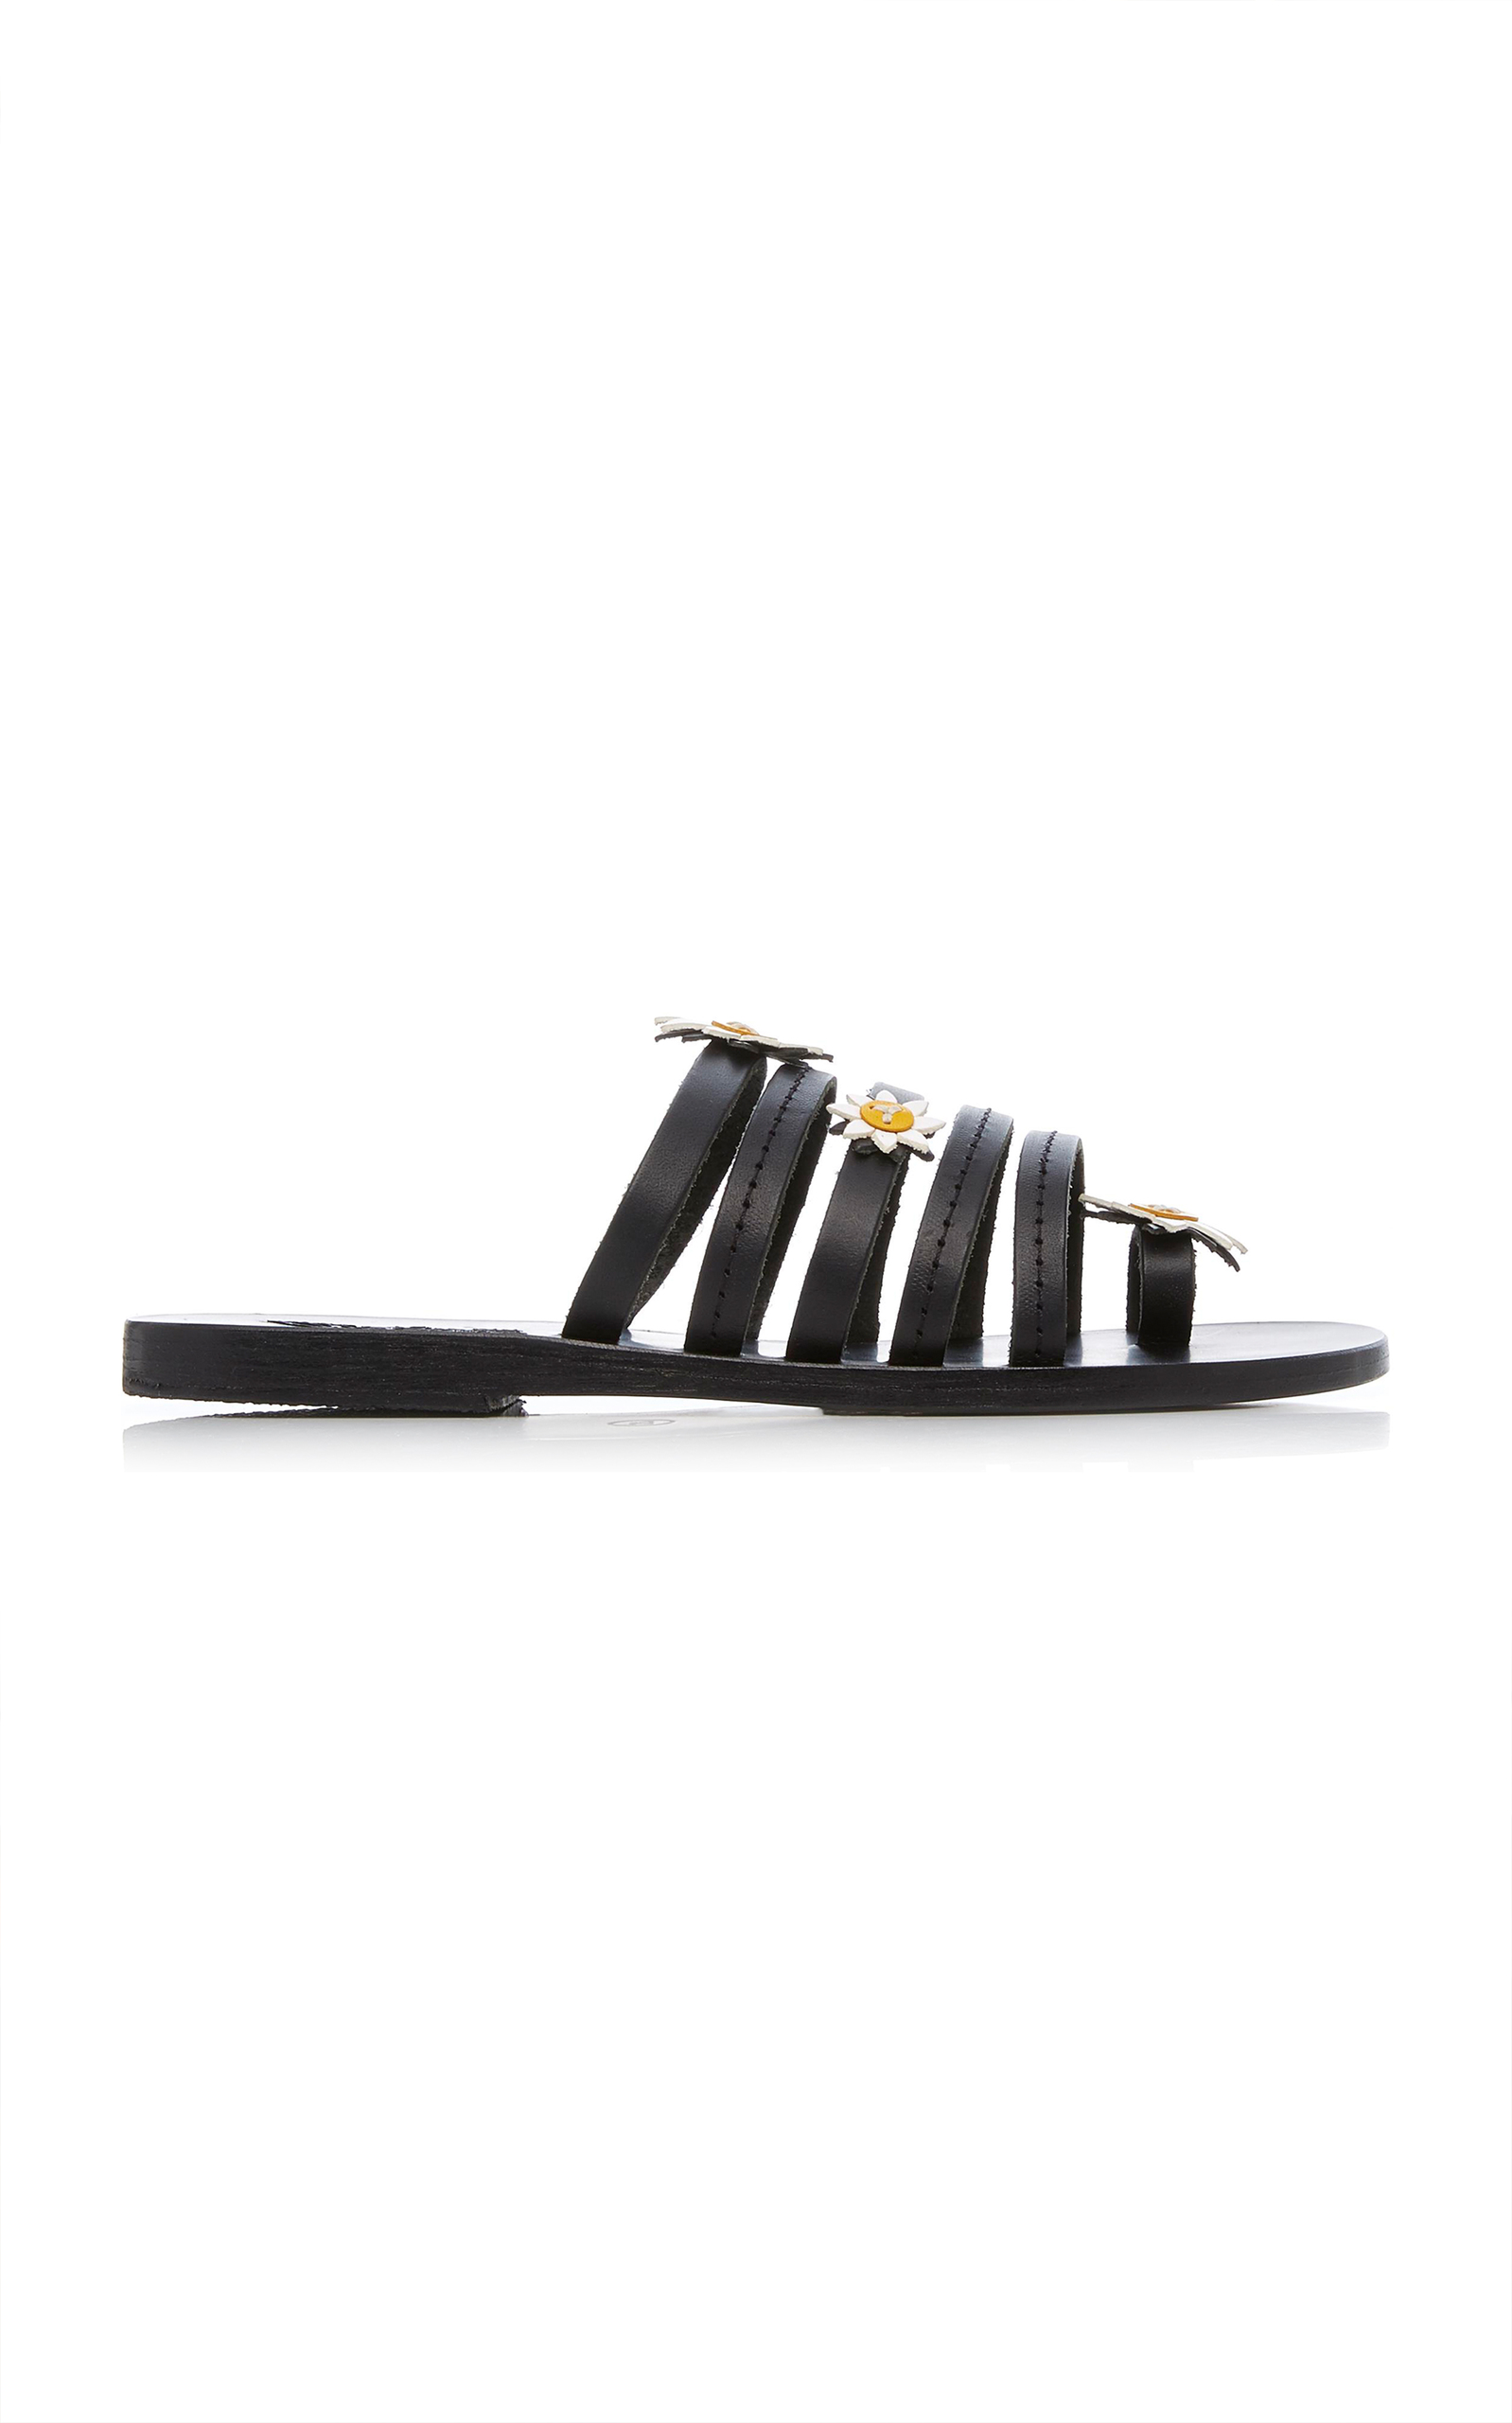 VICTORIA FLORAL-EMBELLISHED LEATHER SLIDES